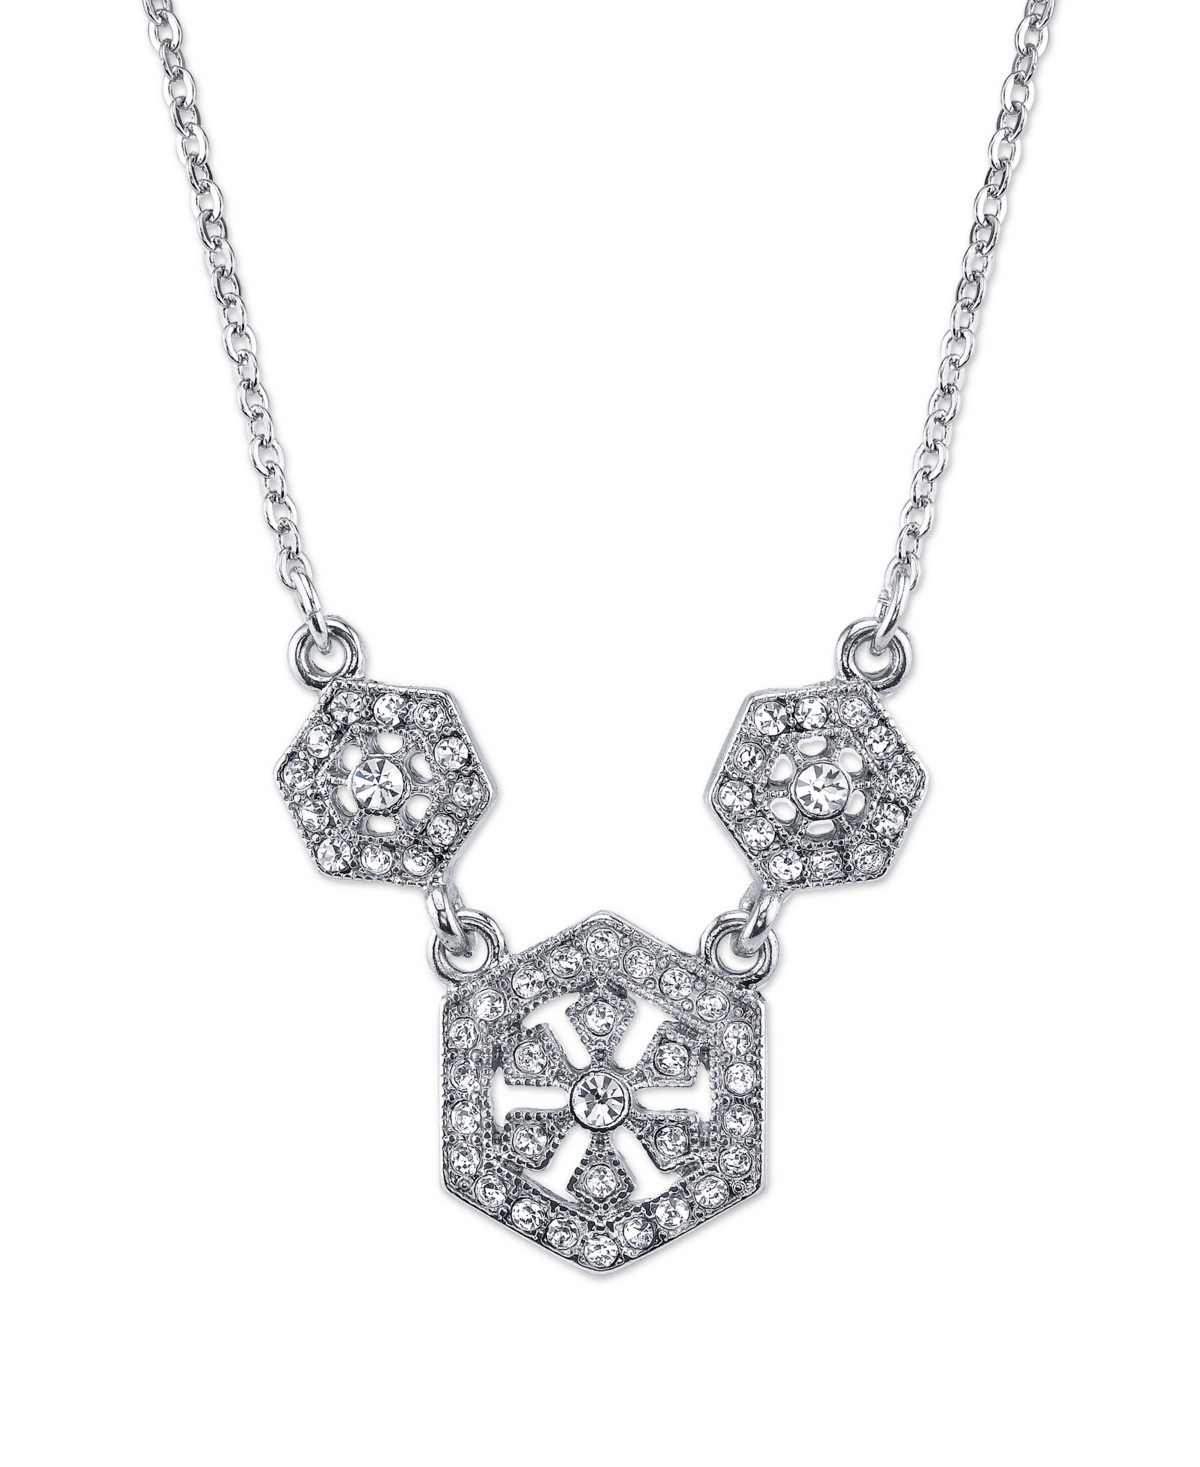 Downton Abbey Silver-Tone Crystal Necklace 16